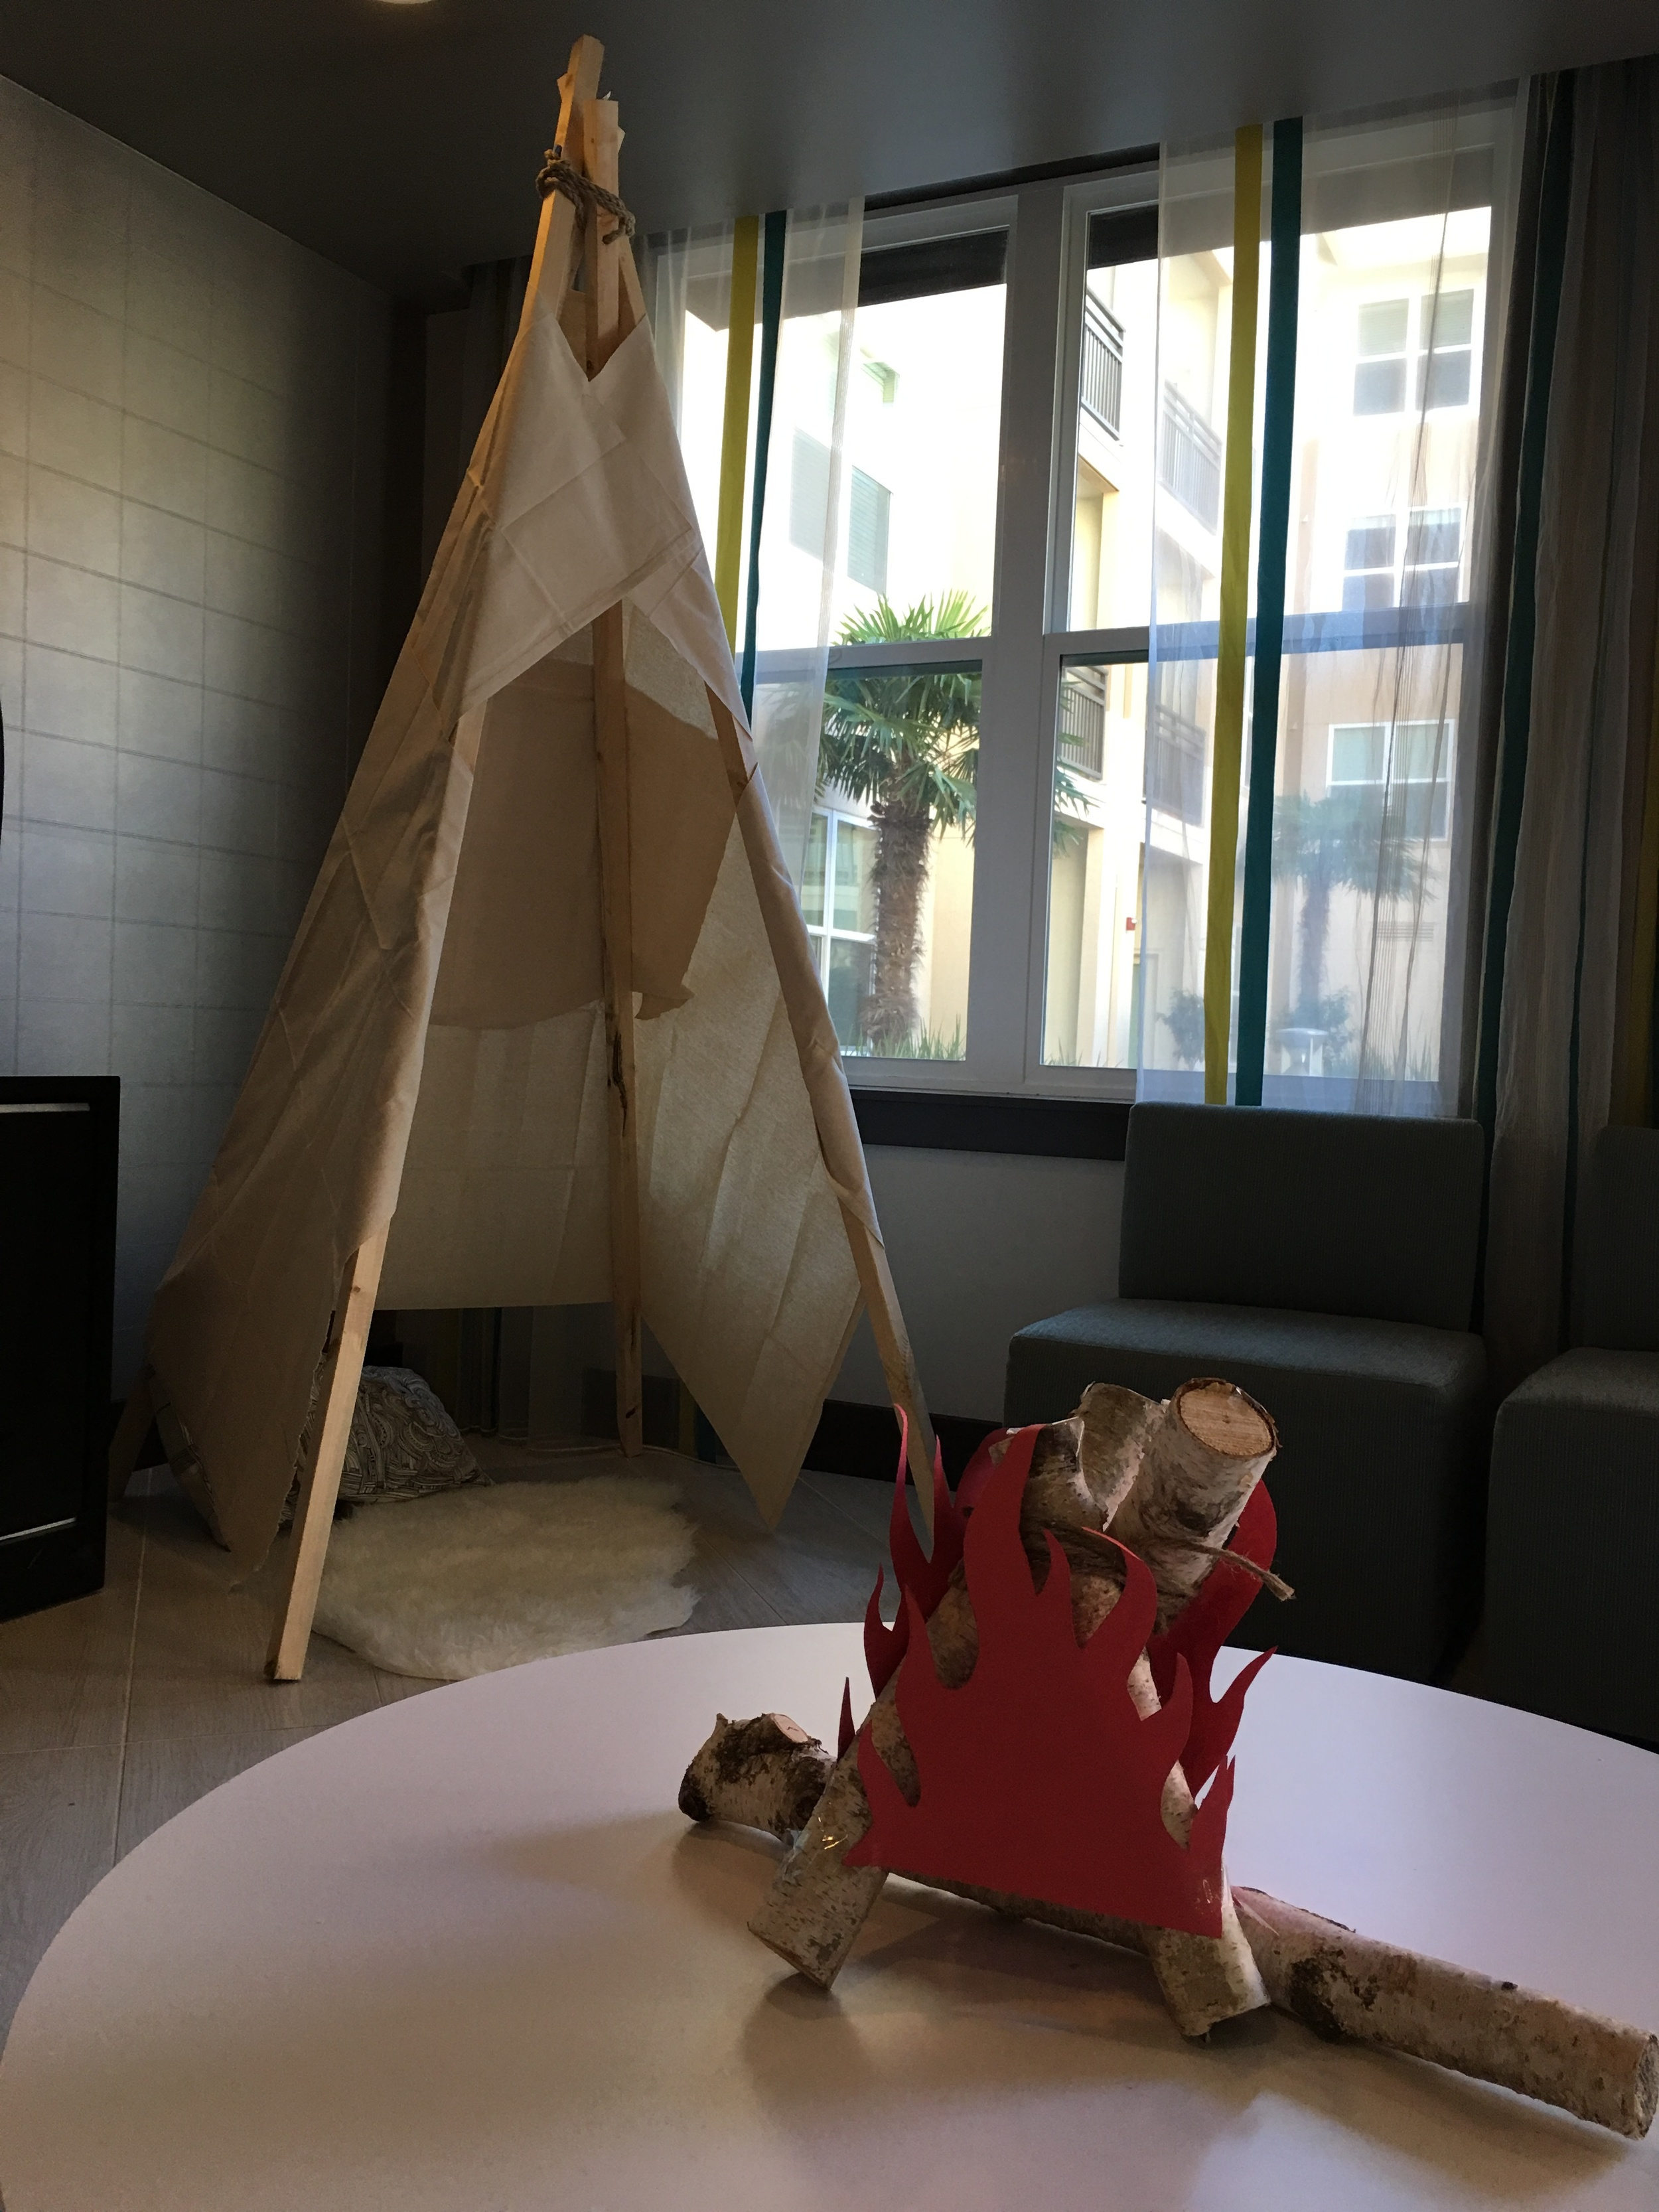 Teepee time! a faux campfire made from birch wood and construction paper. A nice touch for the kiddie corner!